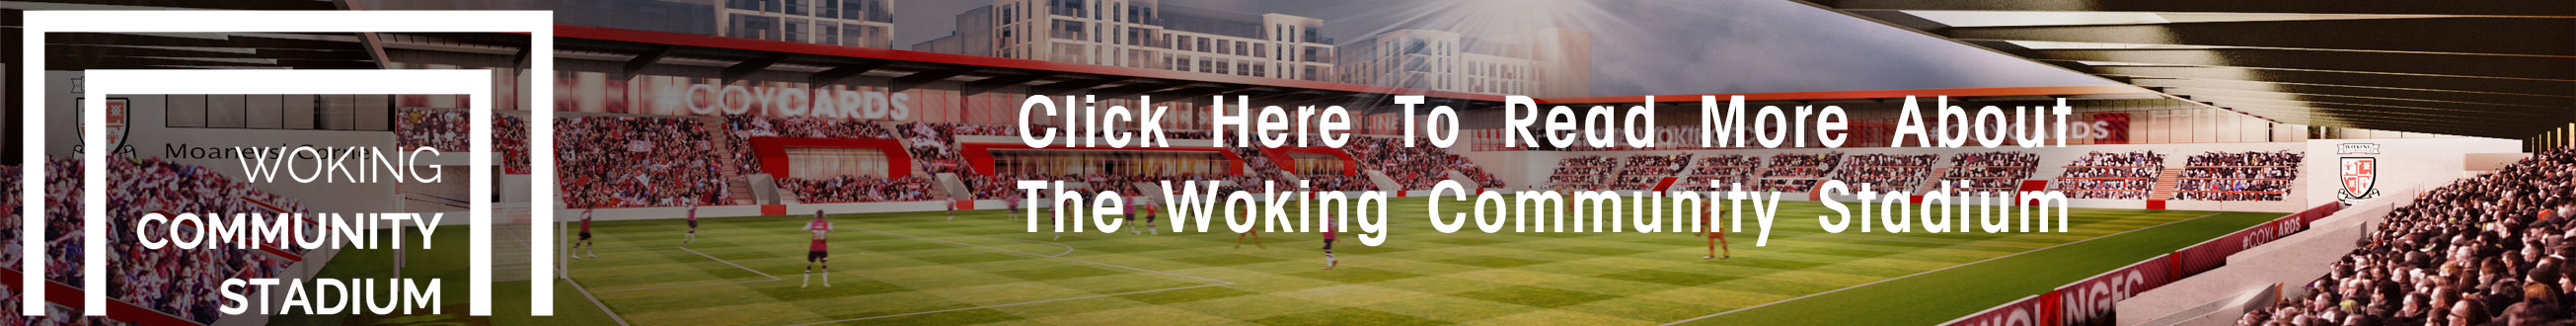 Woking Community Stadium